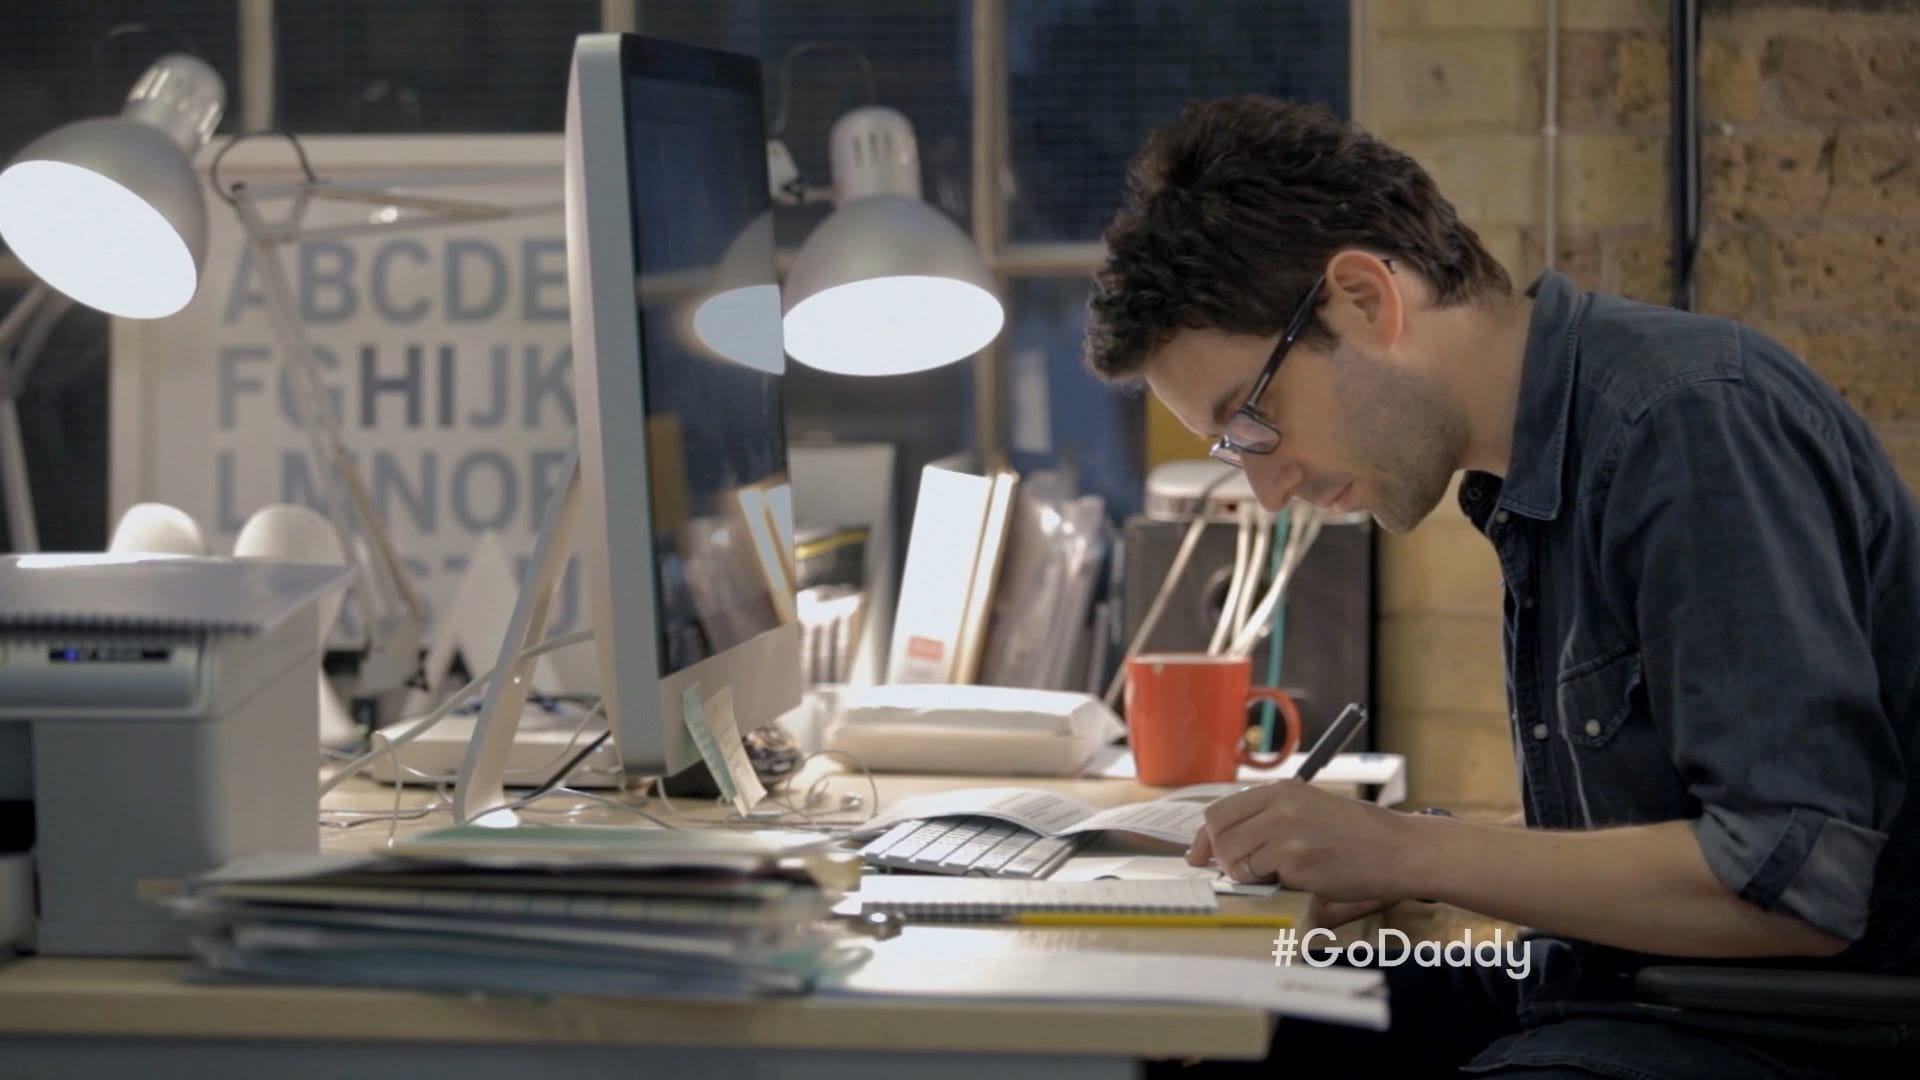 GoDaddy: Working – Big Game Commercial